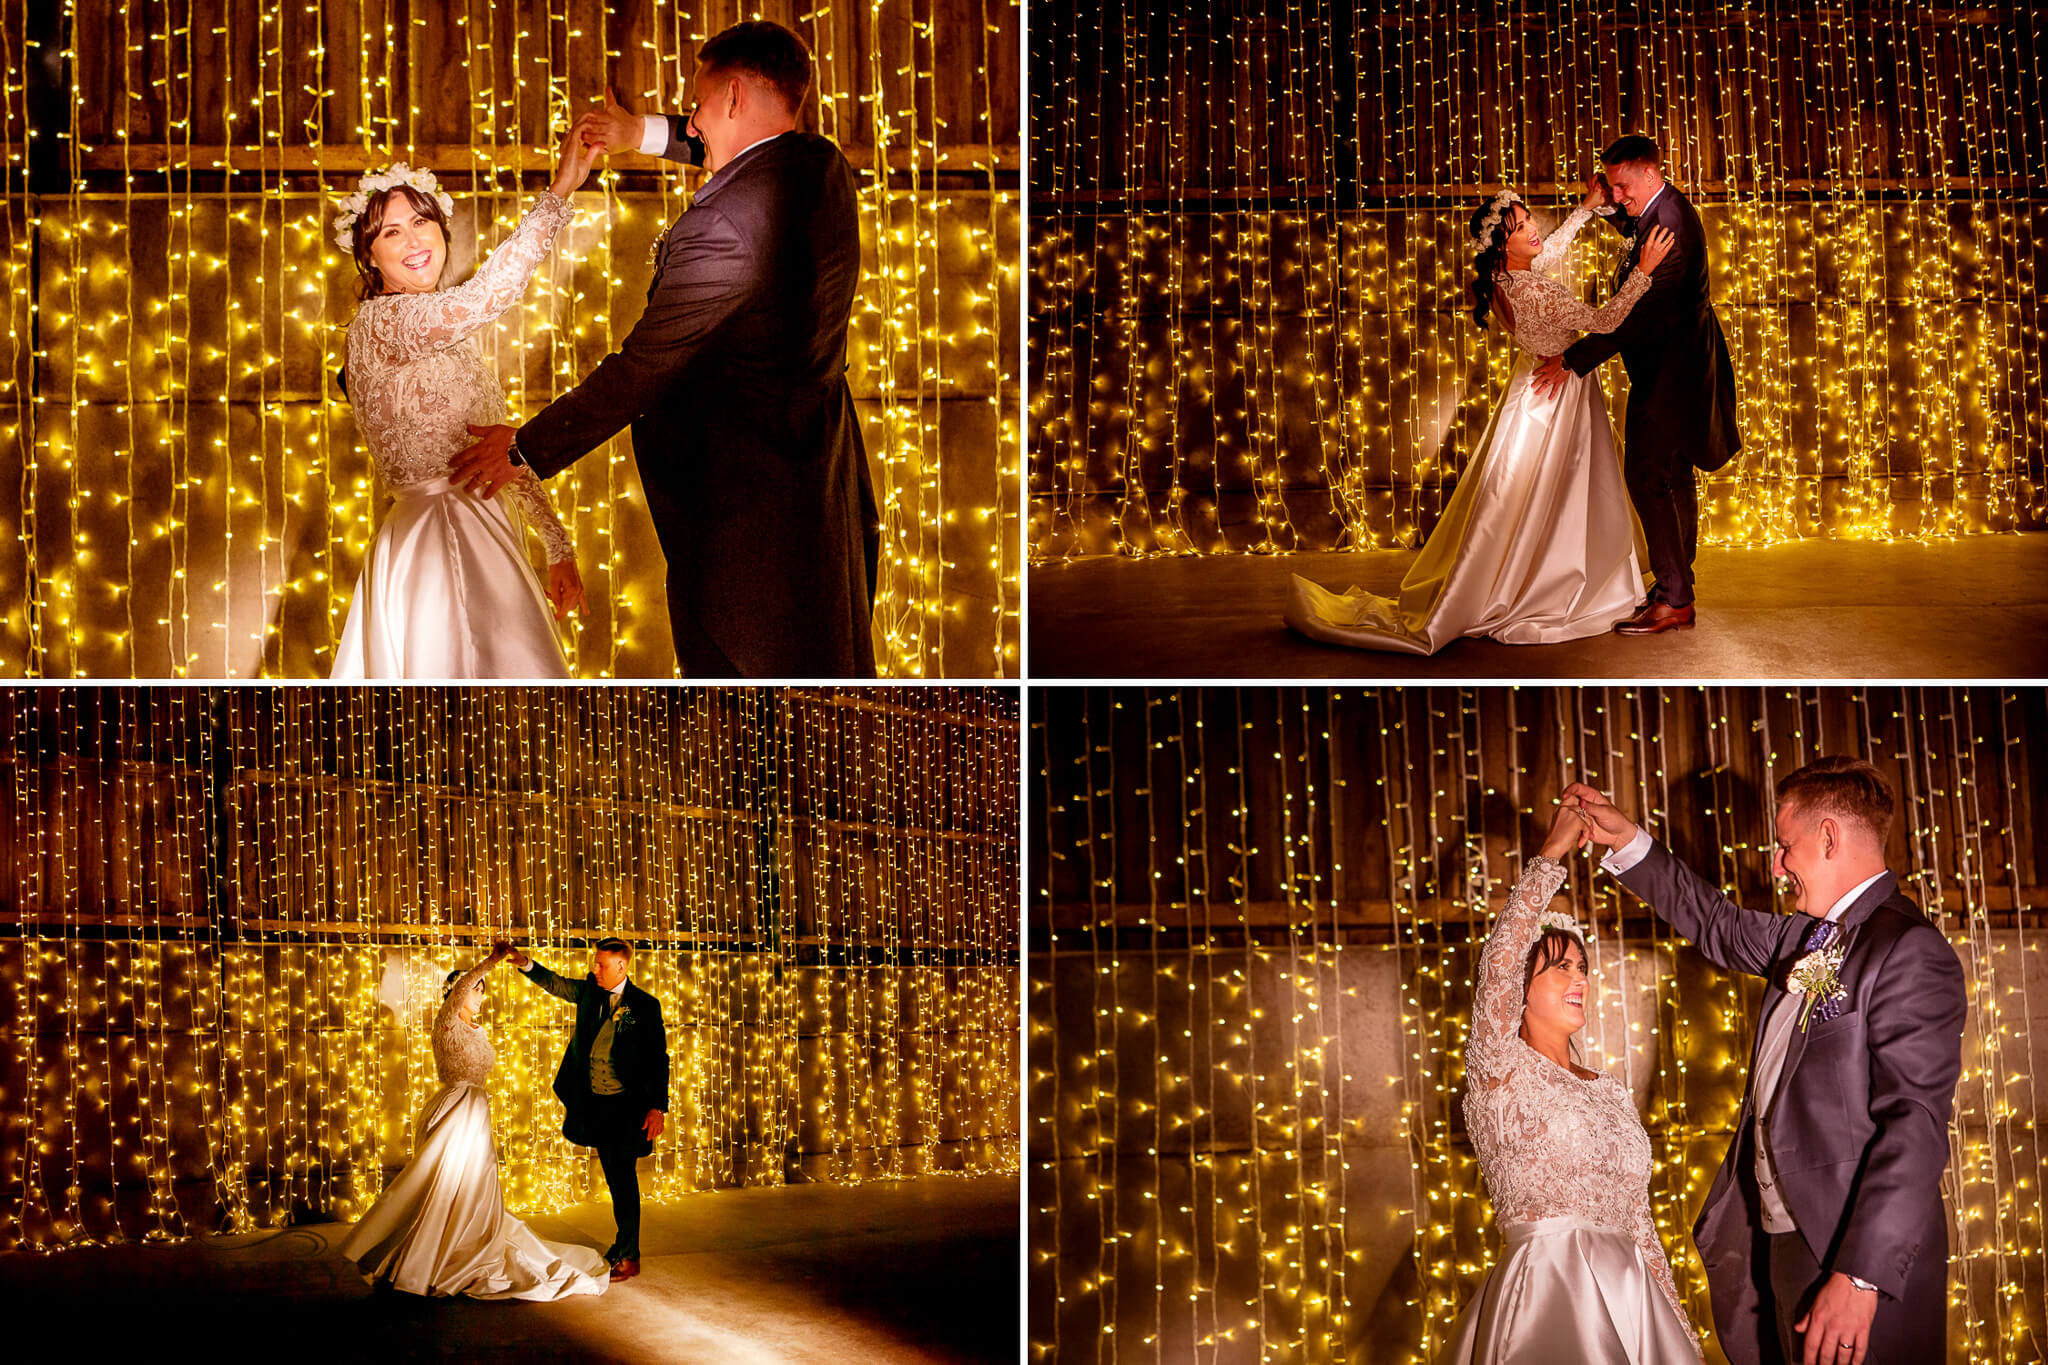 wedding-dancing-photo-photography-stanbury